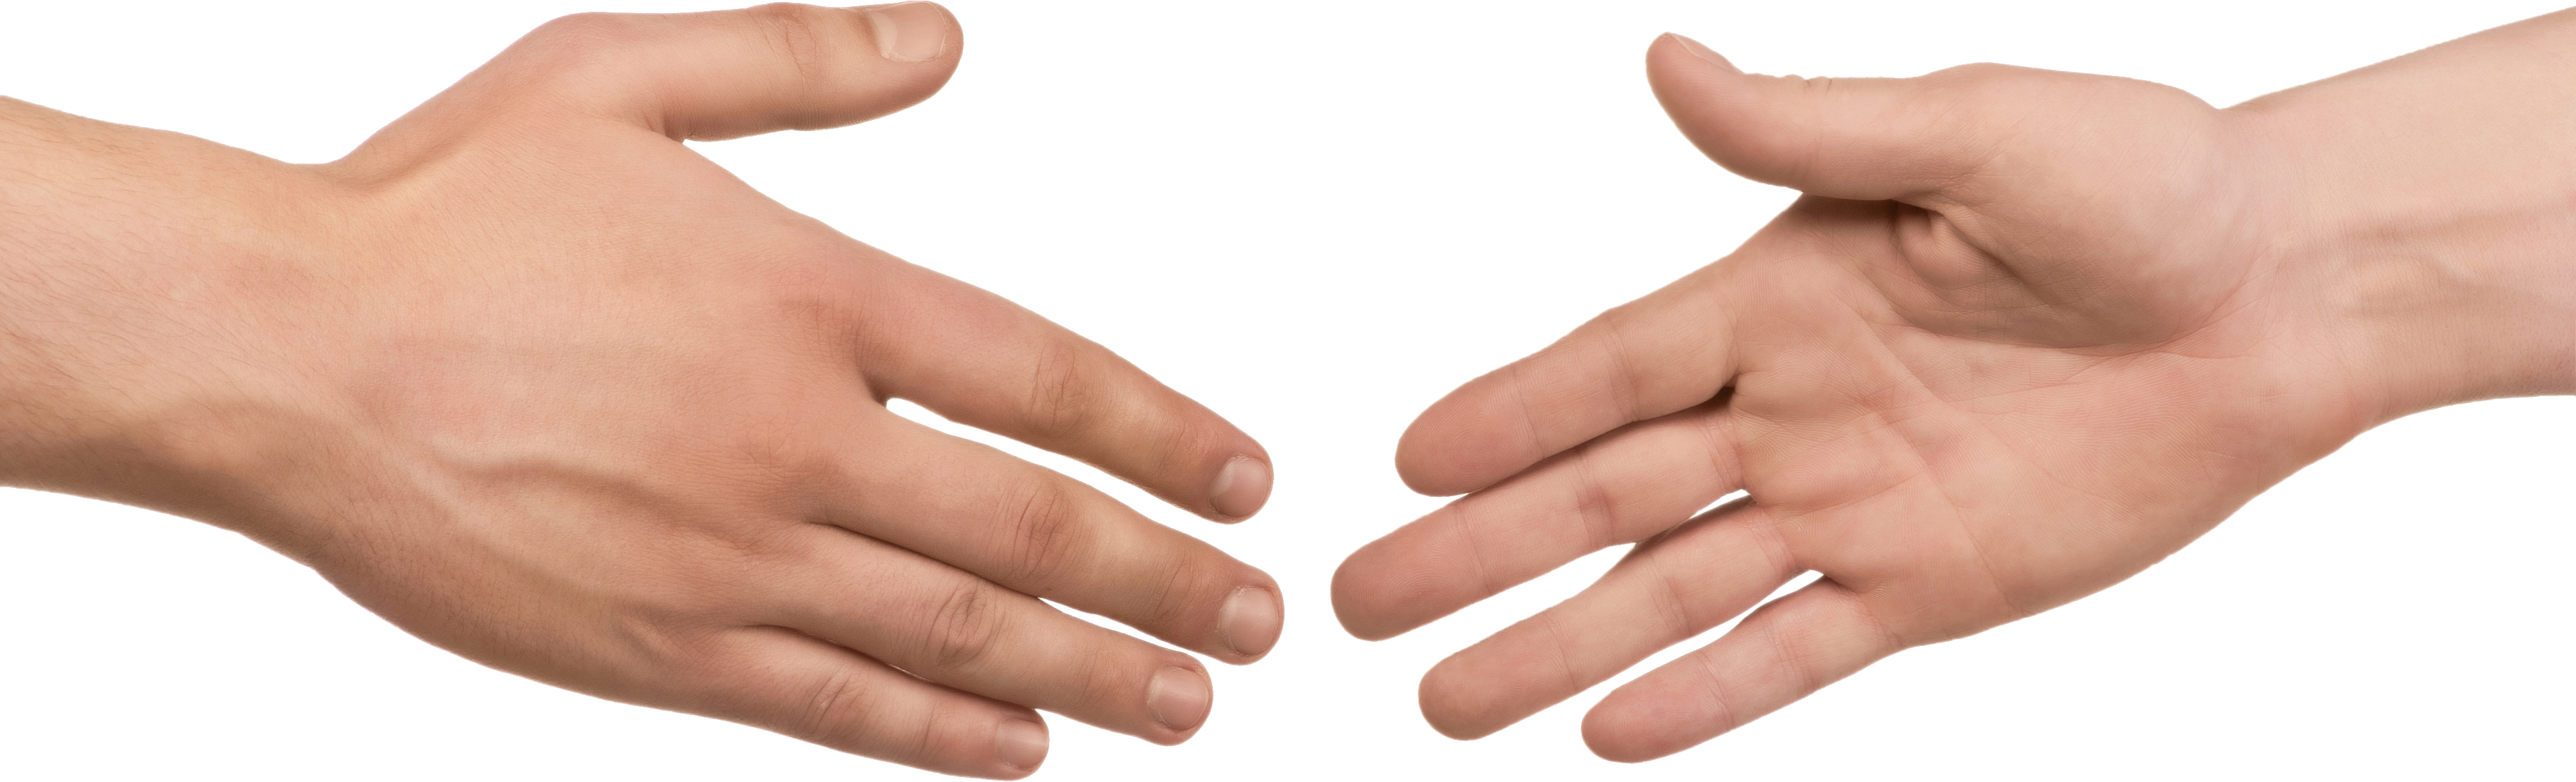 Back of hand png. Hands image purepng free